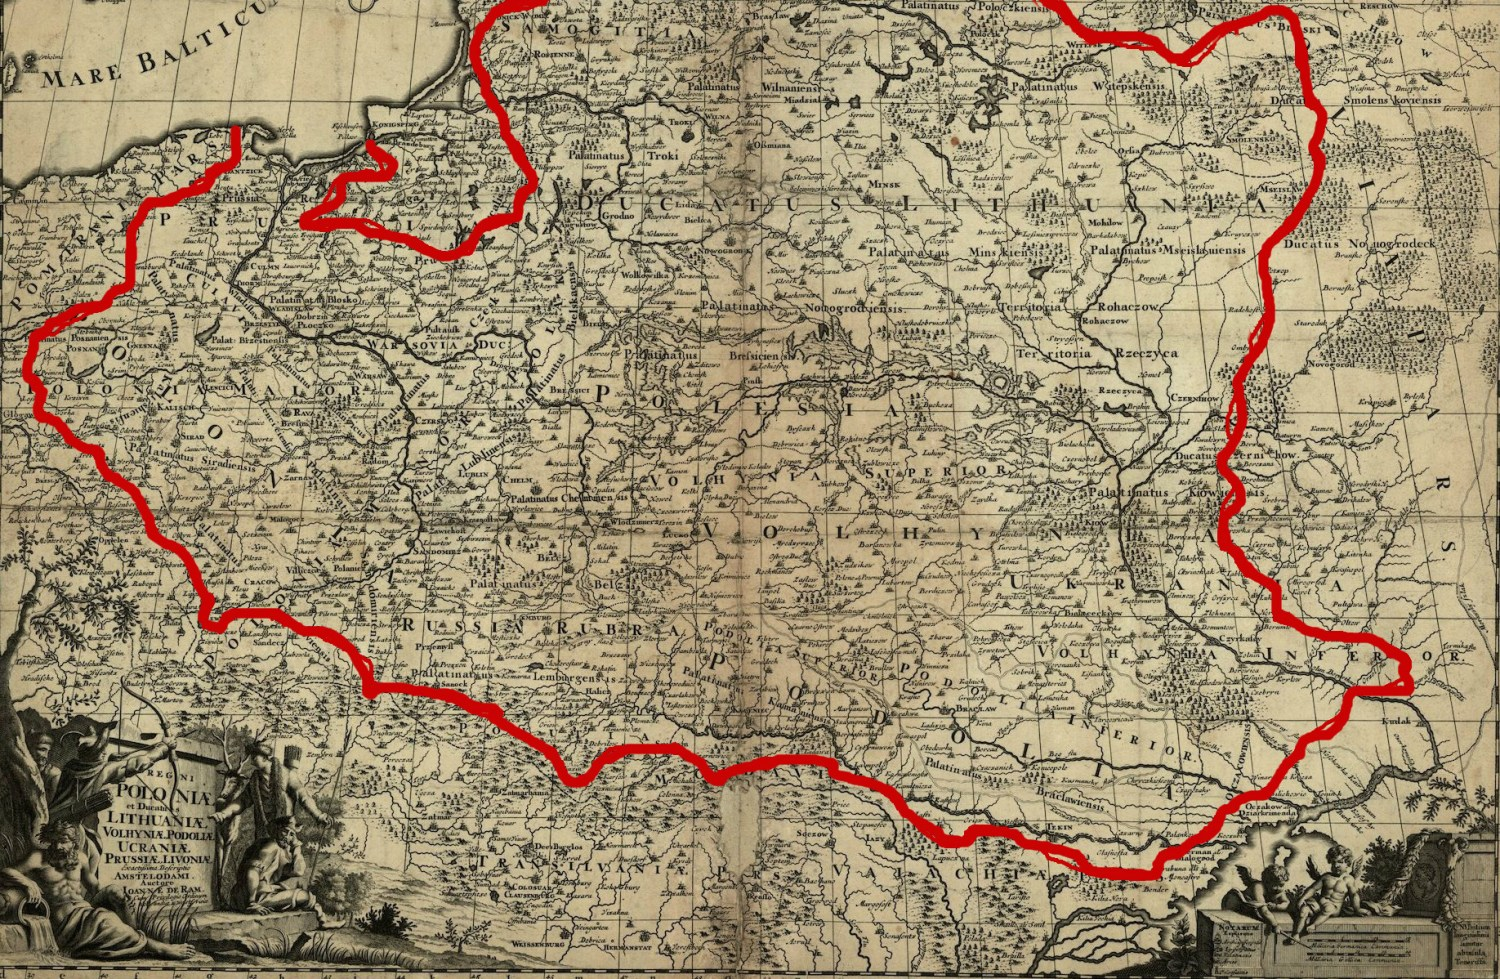 15 Historical Quirks That Make Poland So Different from the Rest of